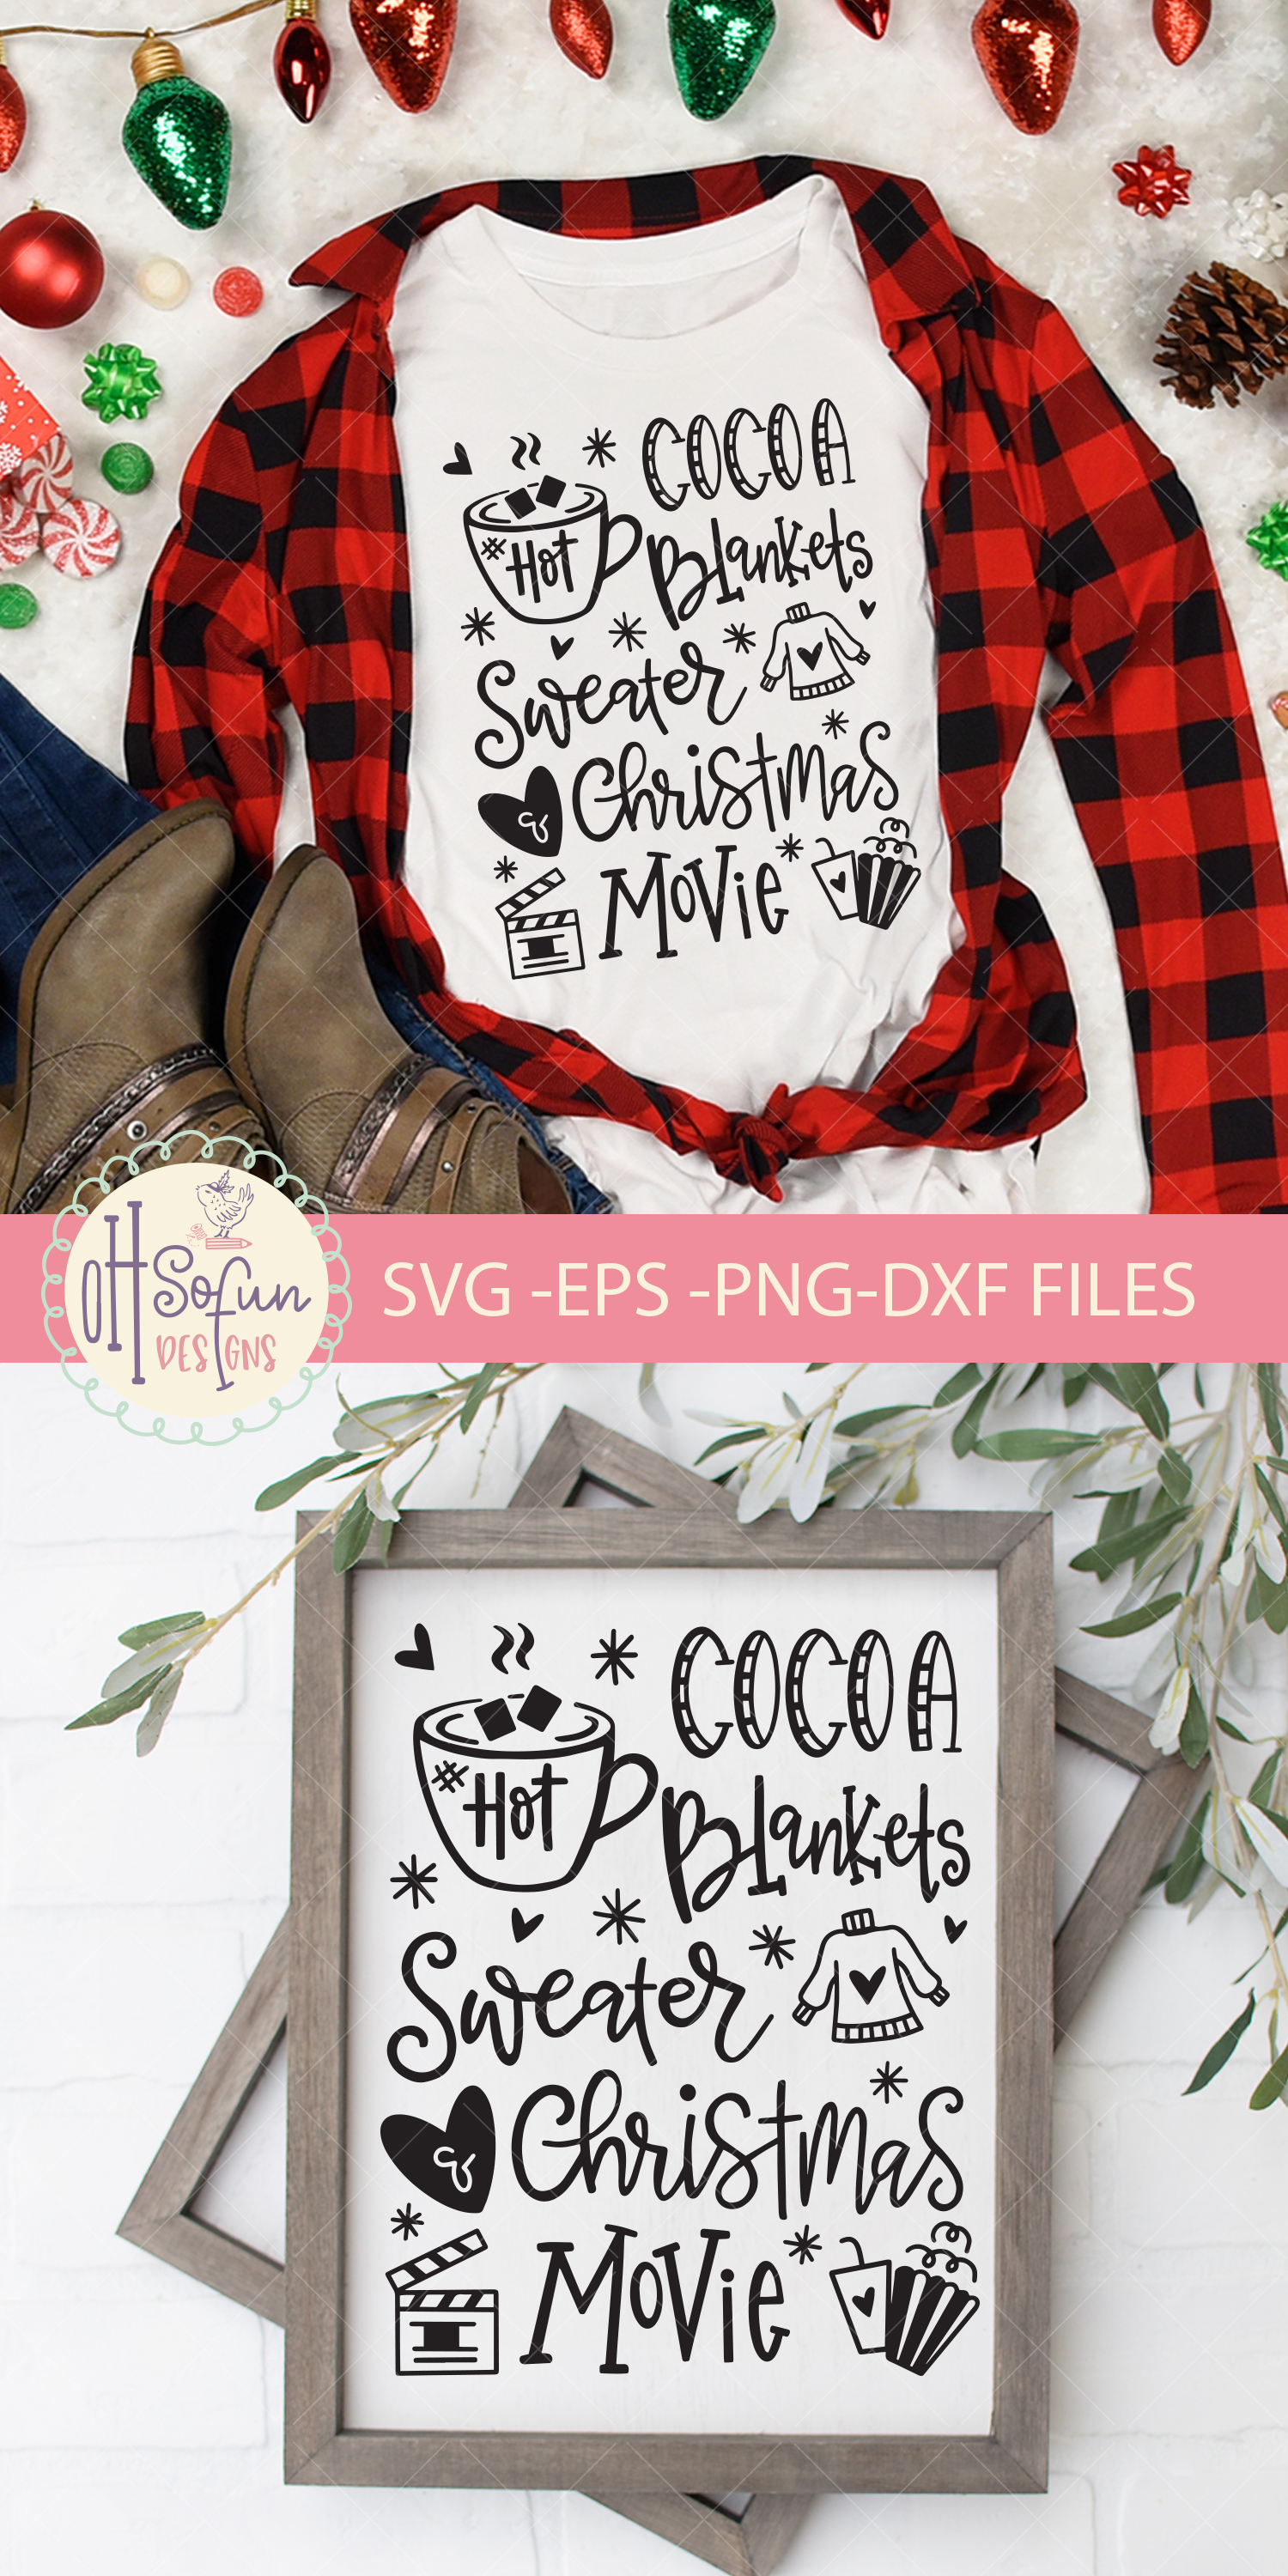 Hot cocoa blankets sweater Christmas movie, SVG example image 4